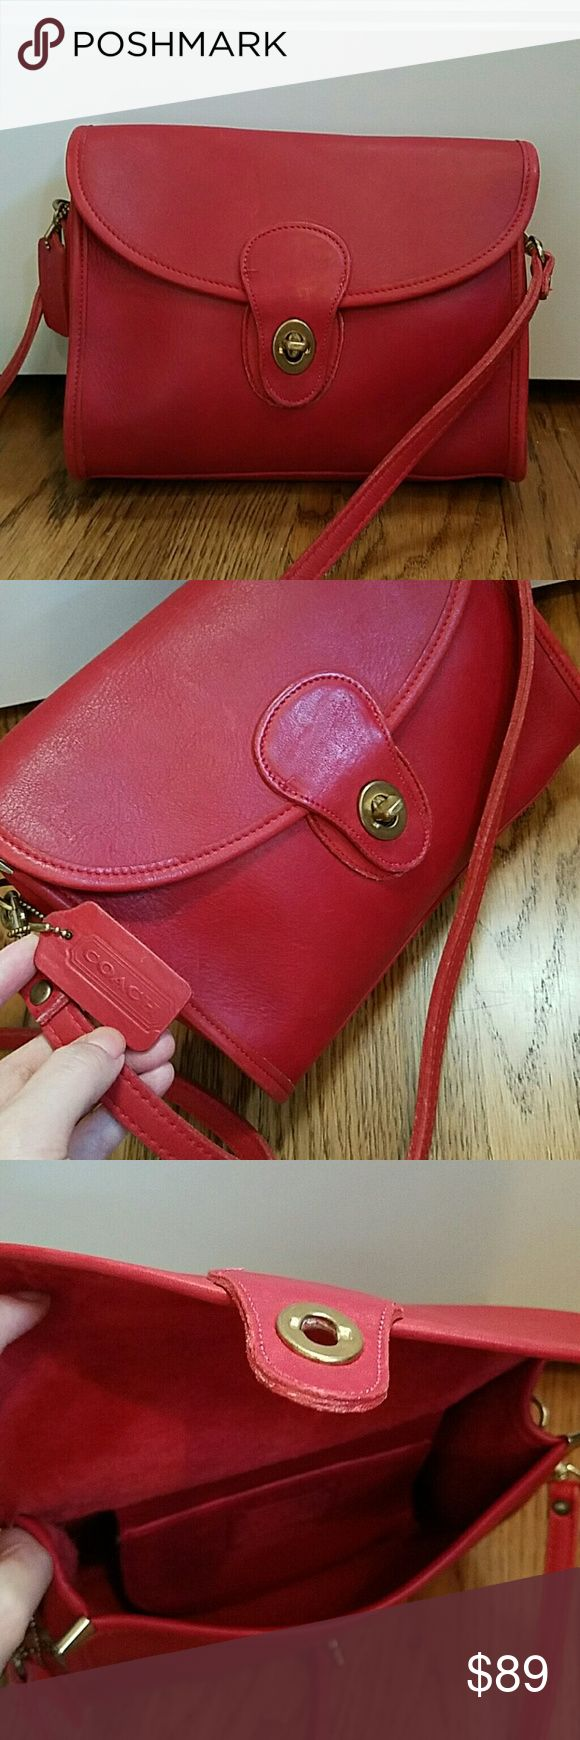 """Vintage Coach Red Leather Crossbody bag USA made Vintage Coach Red Leather Handbag Crossbody Beautiful red leather Preowned, very good vintage condition Measurements: 9"""" long, 7""""tall, 2""""wide, 22"""" Strap Genuine Leather Made in the United States Any questions pls. feel free to contact me.  Thanks for looking!  **Reasonable offers welcomed** Coach Bags Crossbody Bags"""